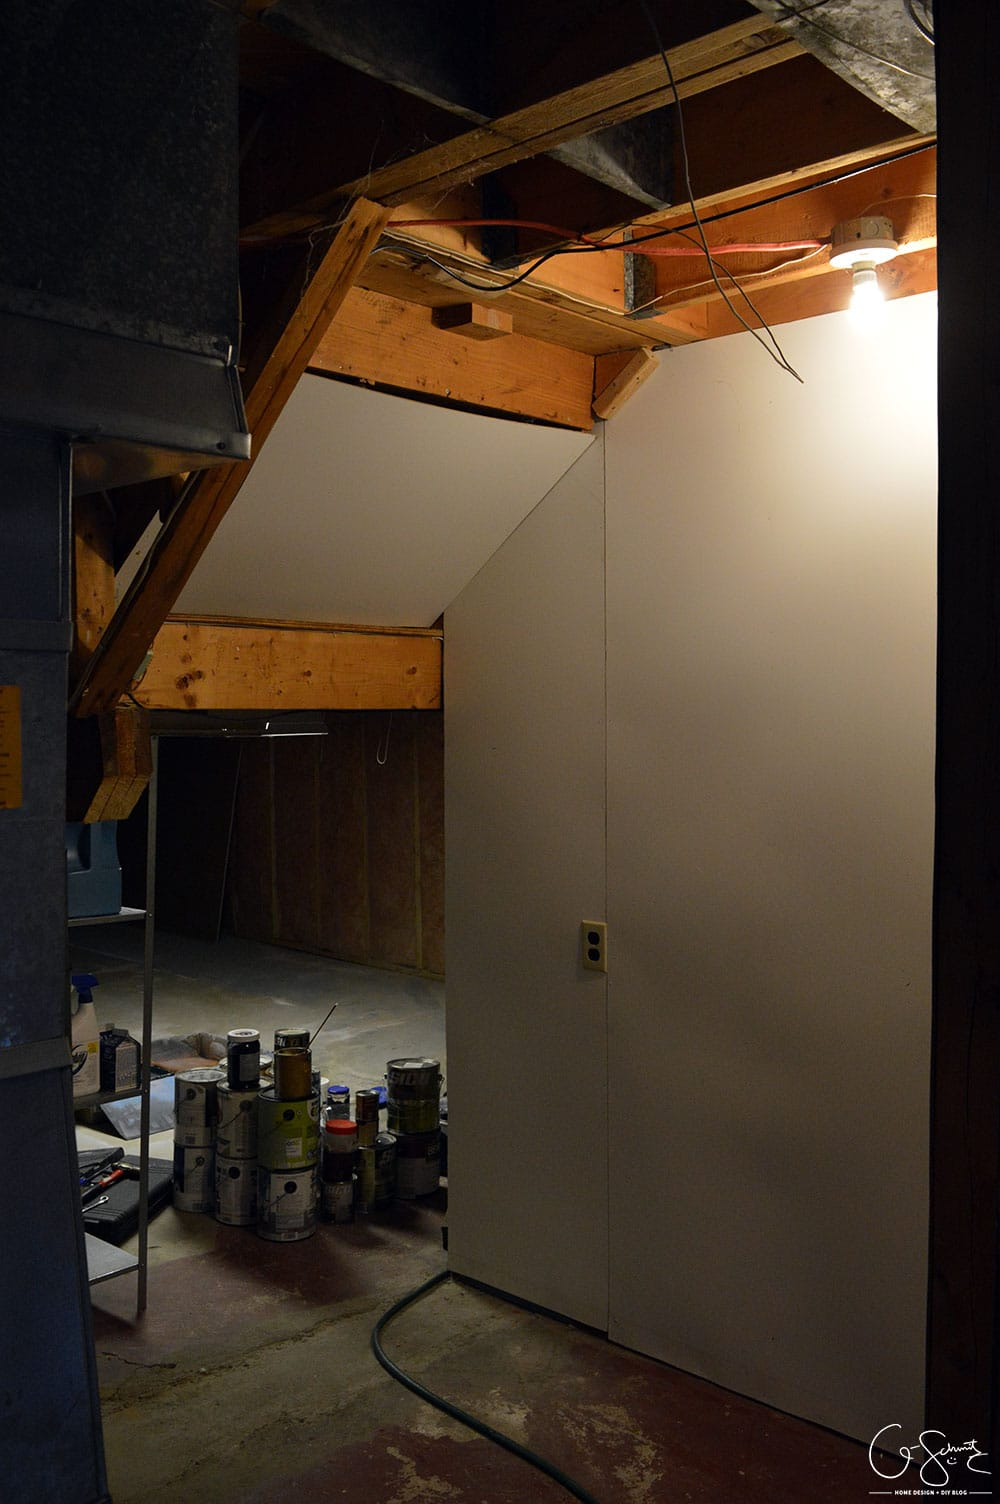 Cleaning the basement and prepping for ORC (one room challenge) has got me excited to share with you all the plans I have for the space (next week!).